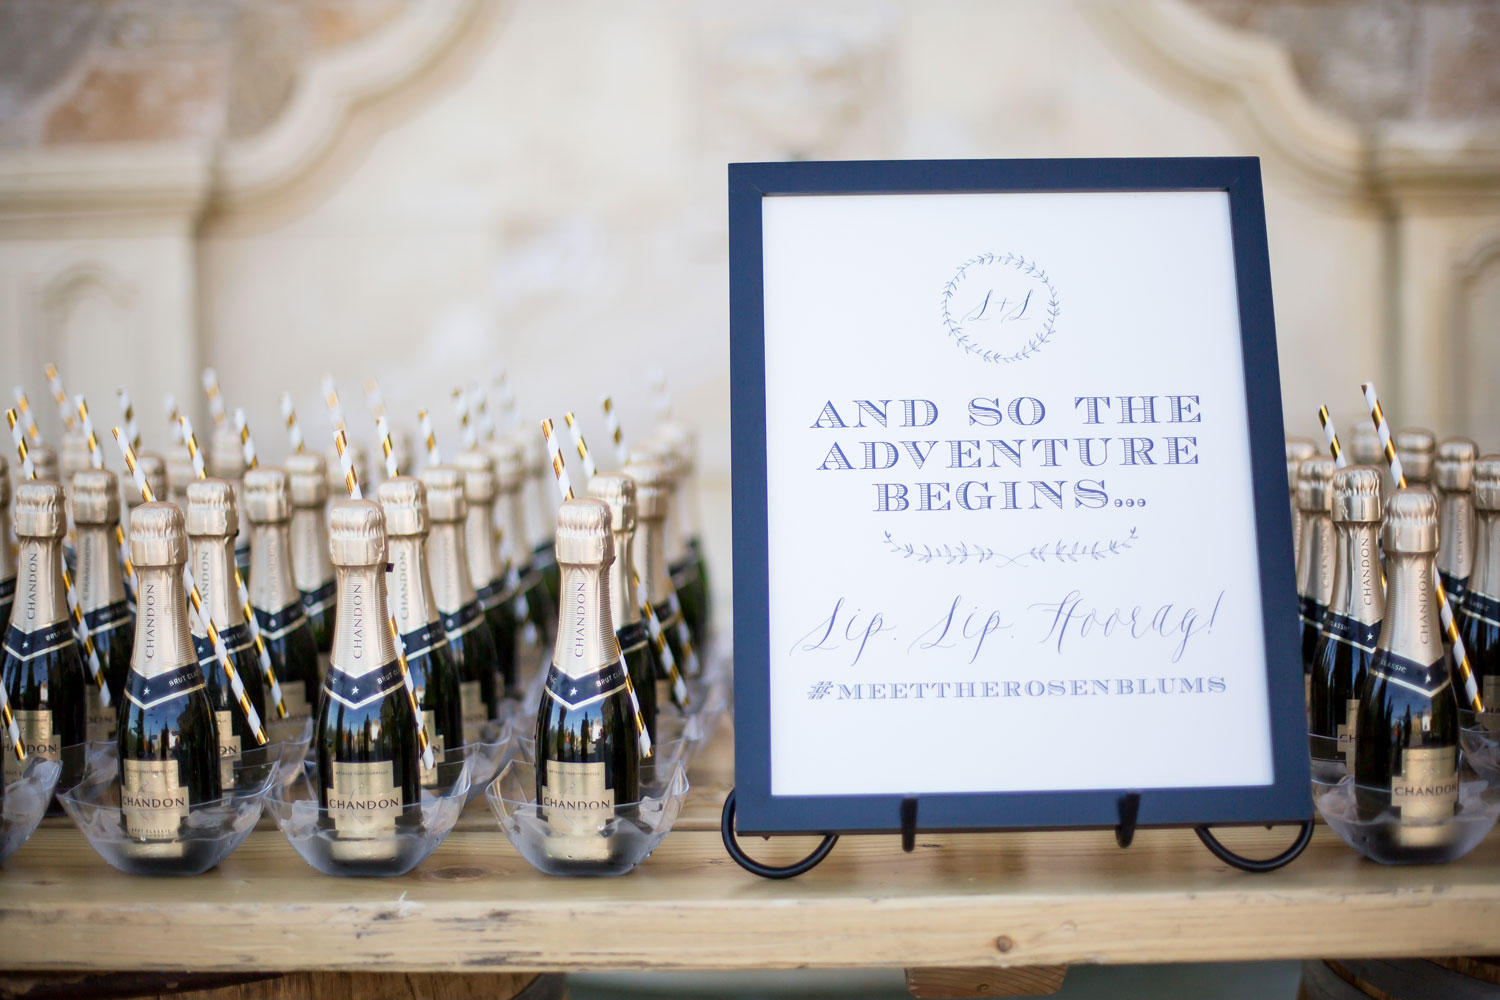 Welcome drinks champagne bottles with sign and cups